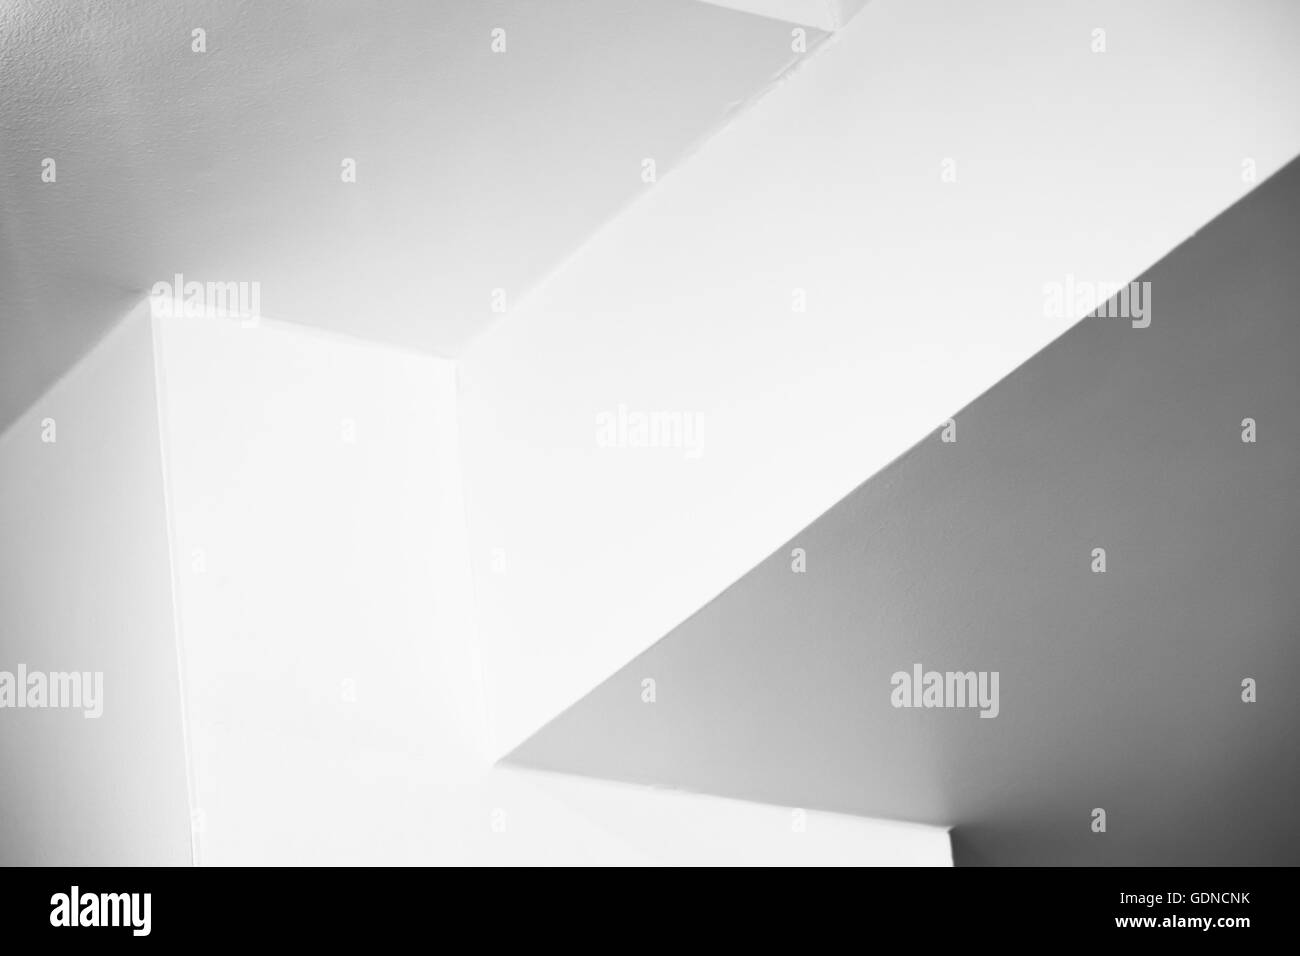 Abstract architecture background, empty white interior design with corners, black and white photo - Stock Image